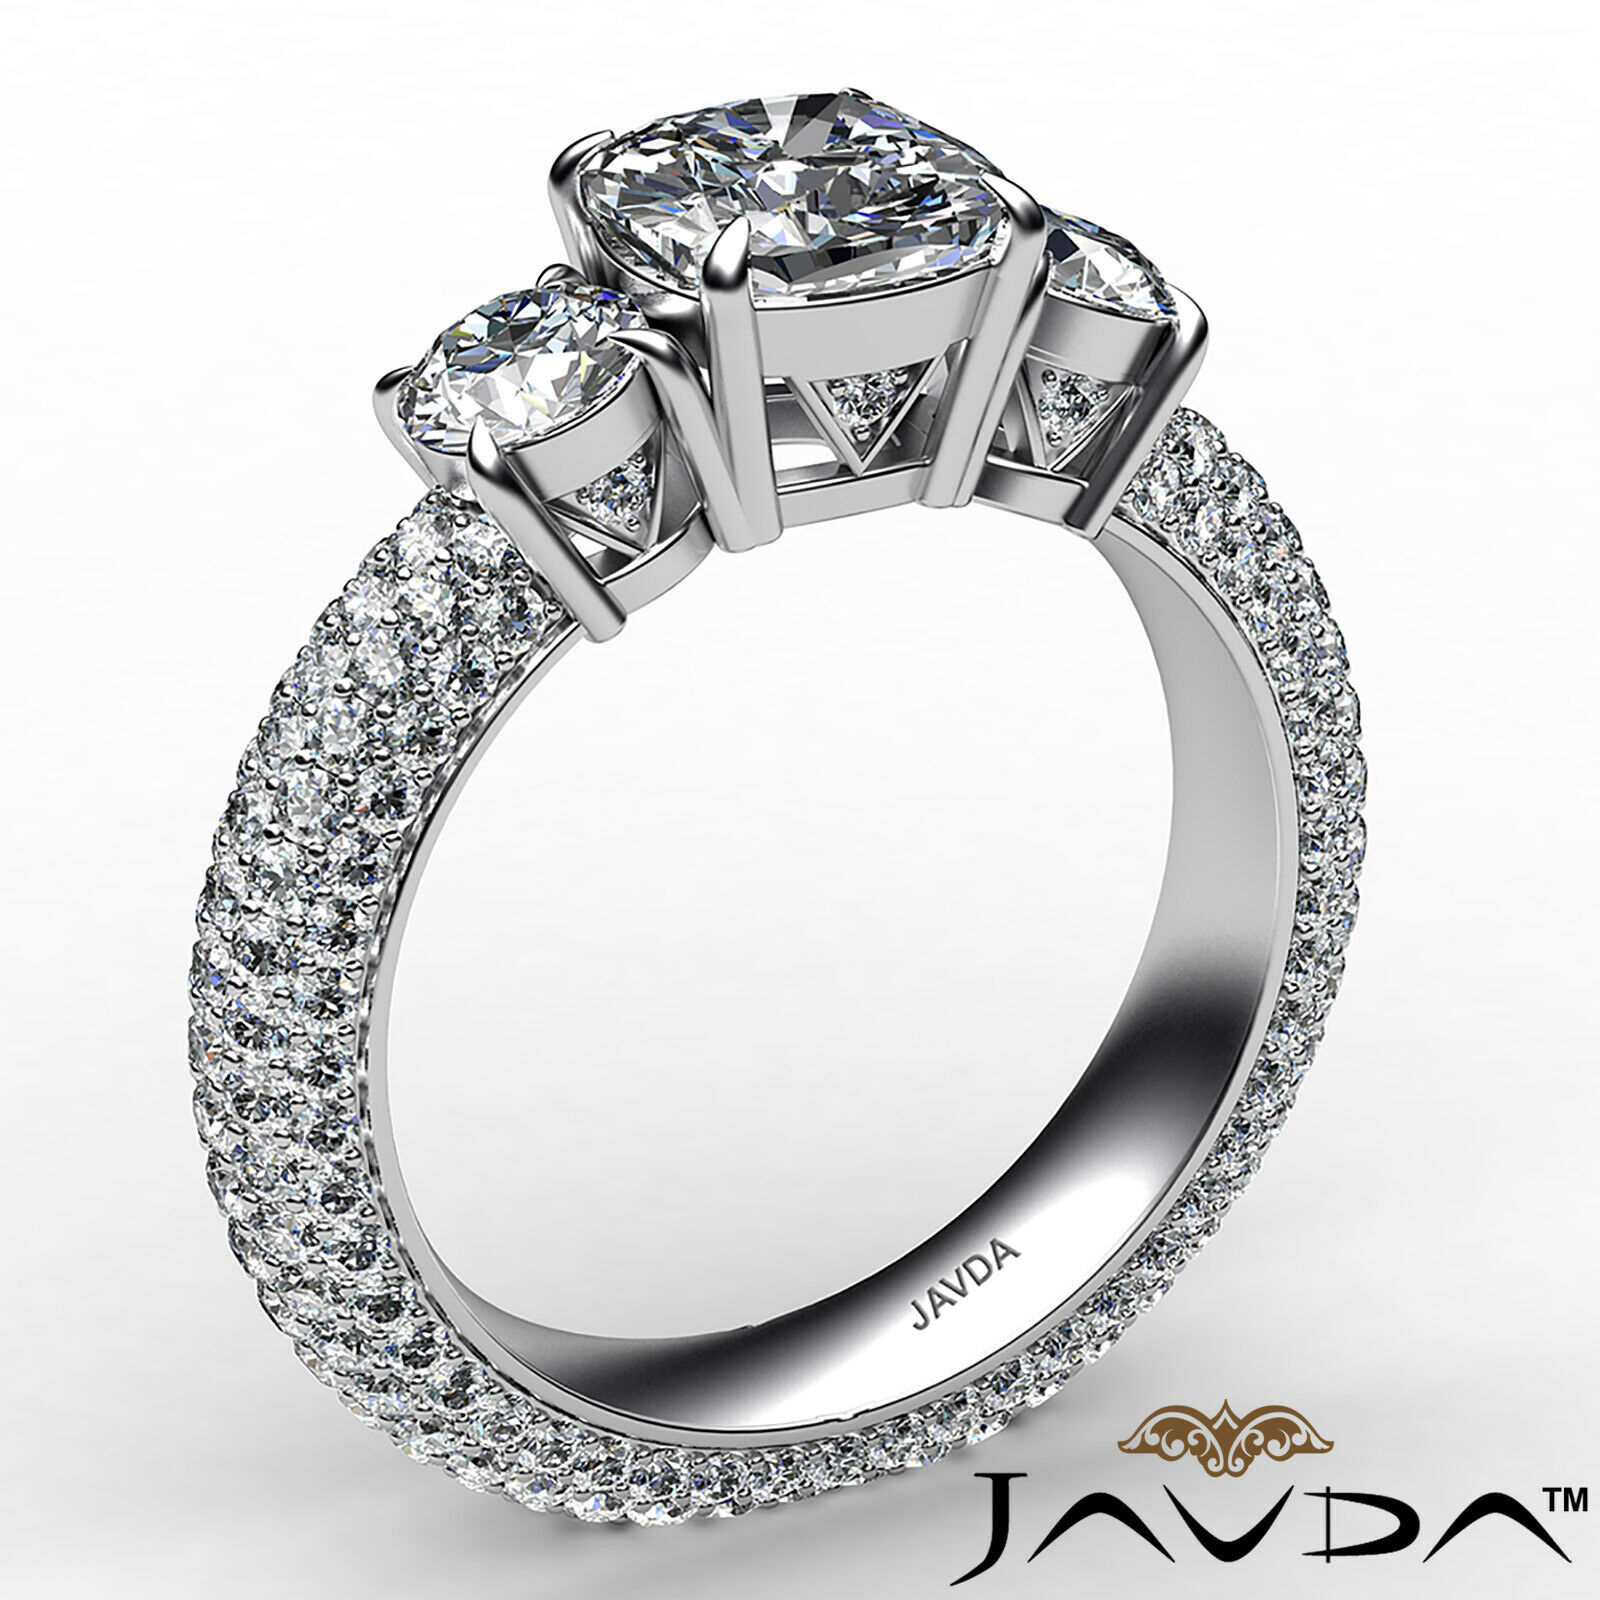 Cushion Diamond Engagement Ring Certified by GIA, G Color & SI1 clarity 3.44 ctw 3